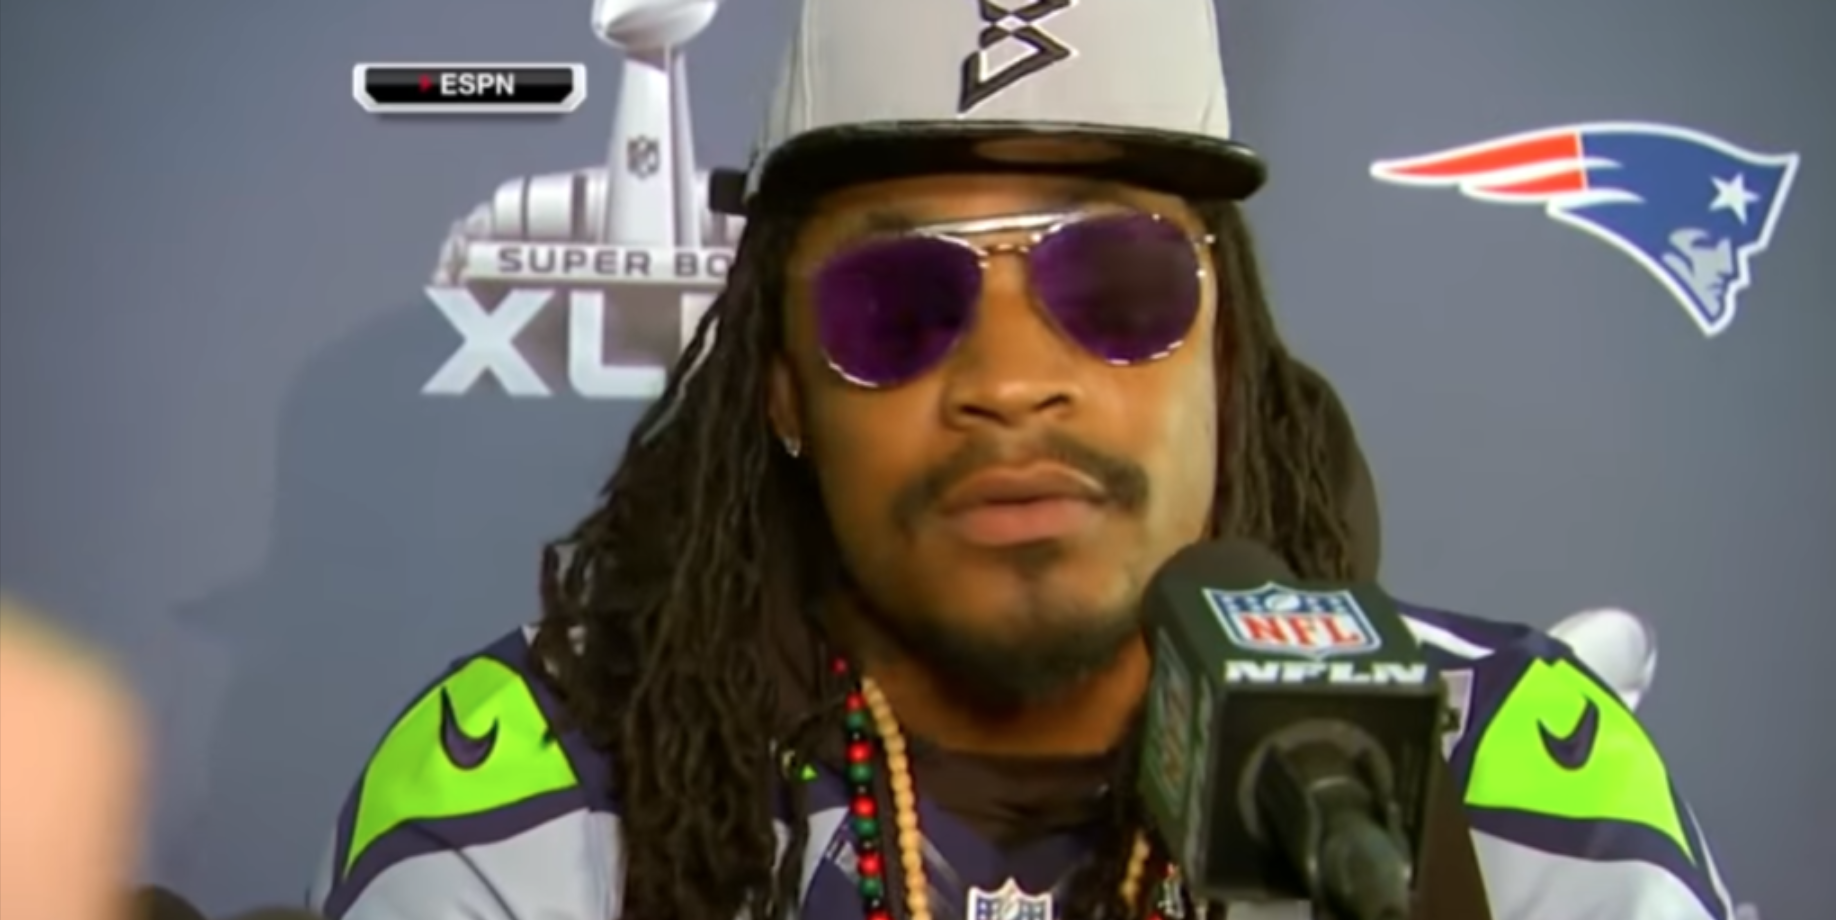 Marshawn Lynch's Embarrassing High School Photo Is Getting Roasted On Twitter